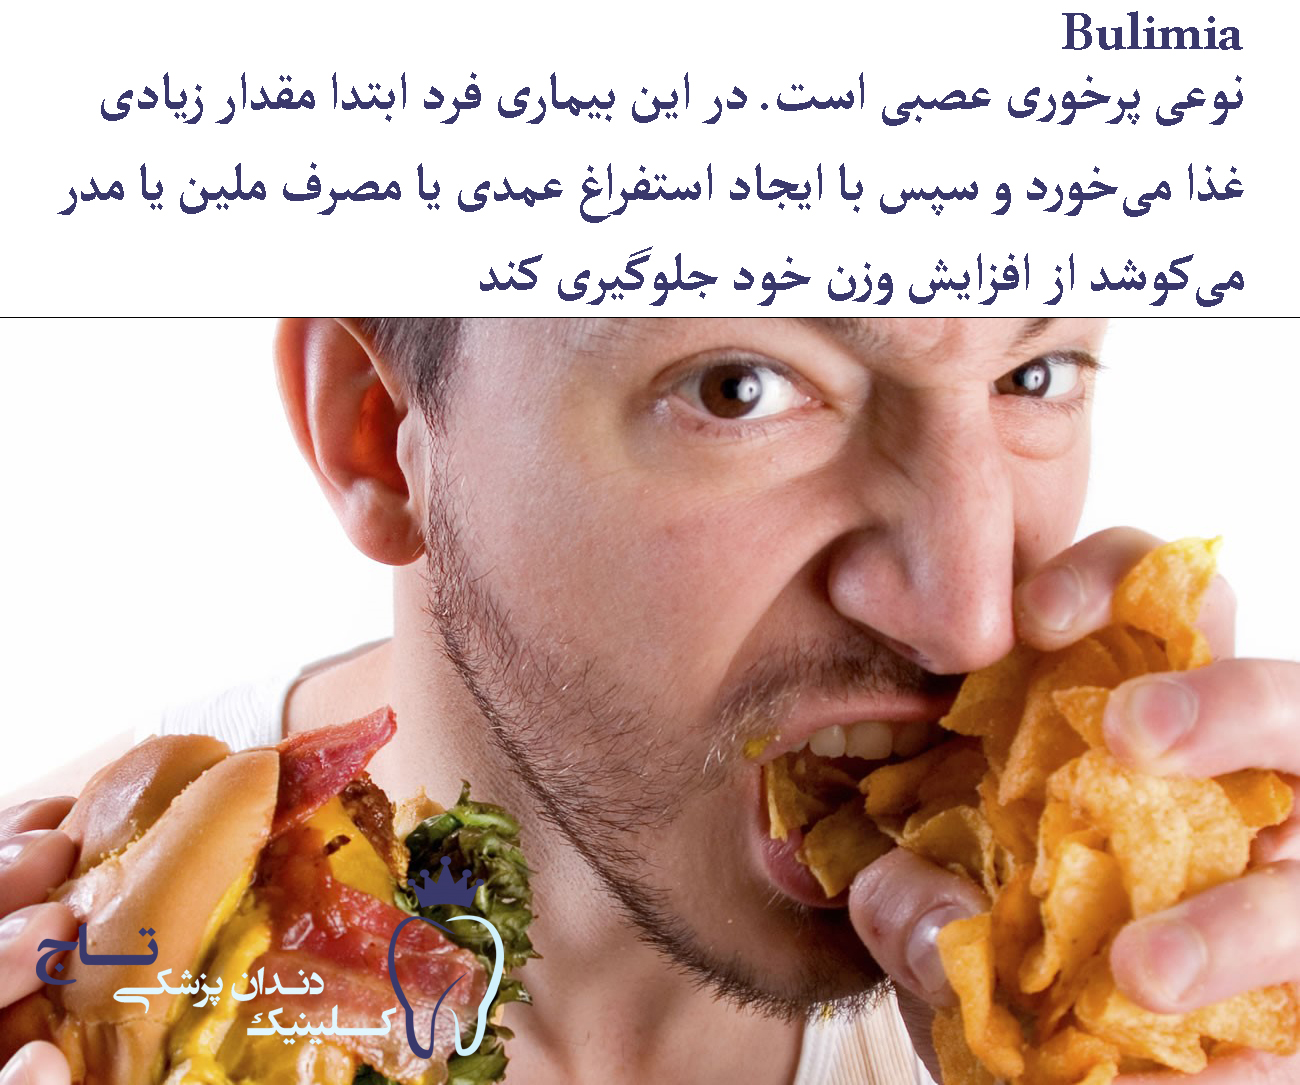 self help strategies for dealing with bulimia nervosa 1 - فرسایش و ترمیم مینای دندان